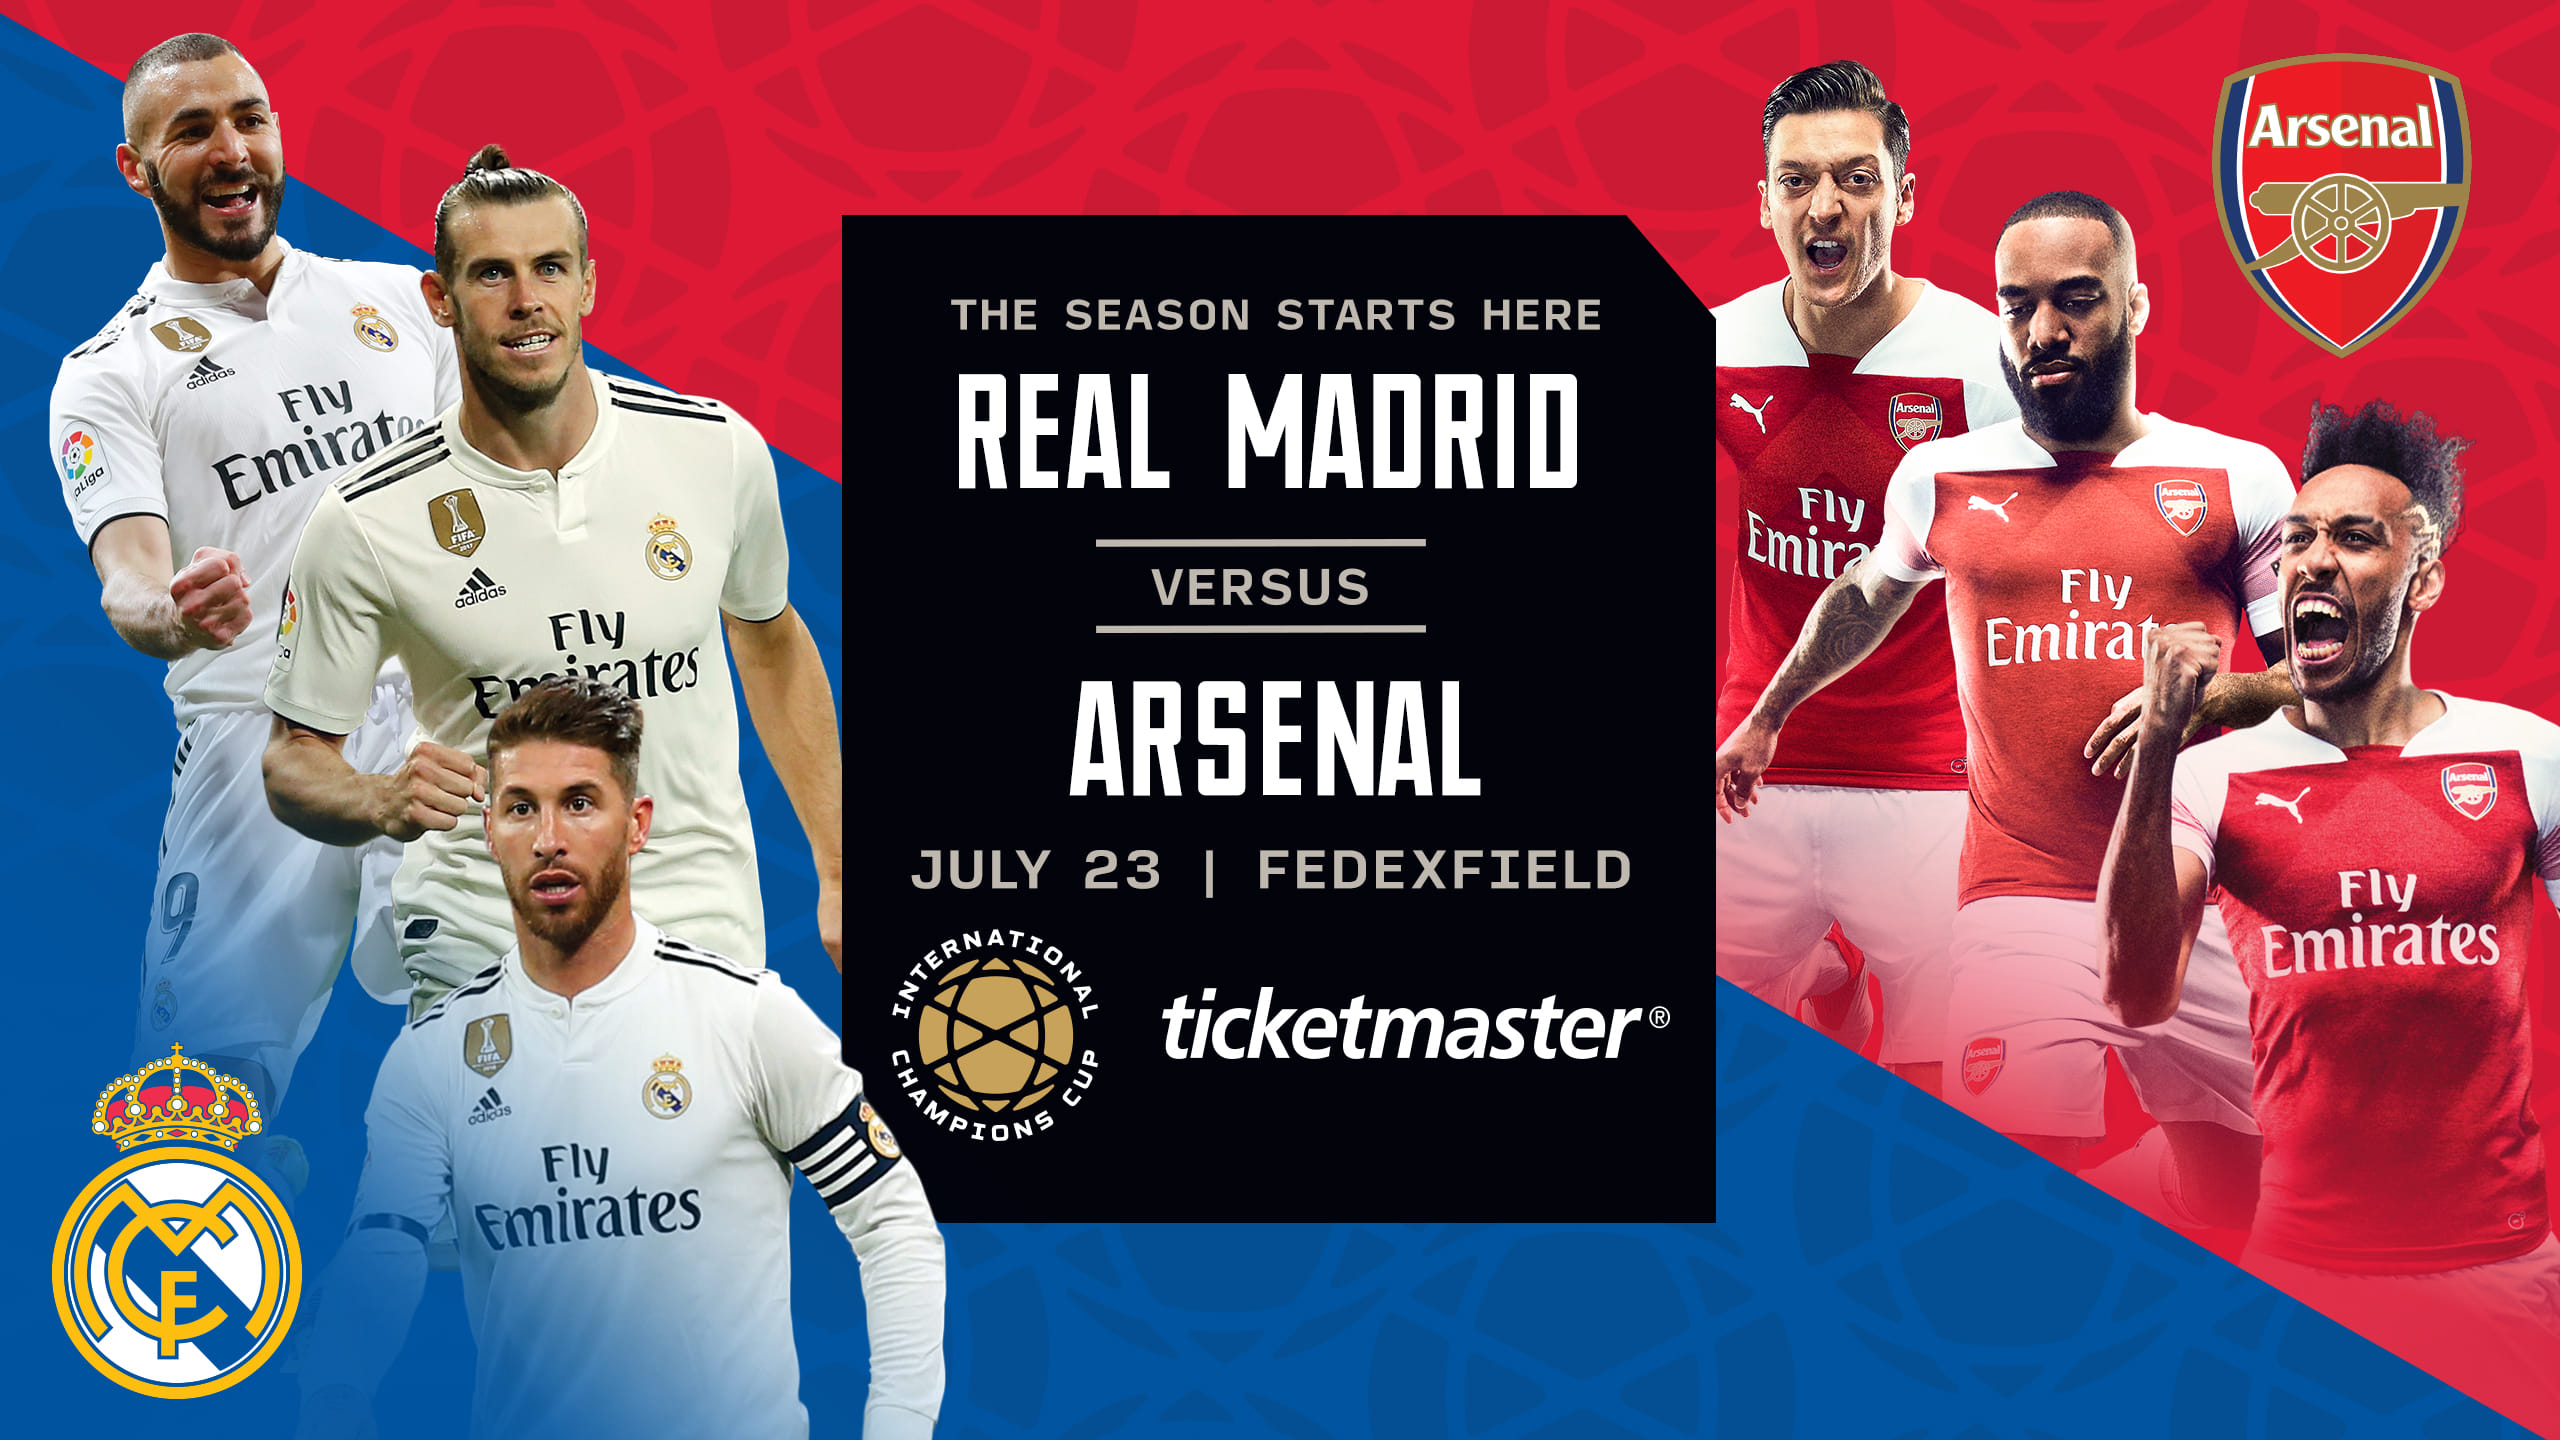 Real Madrid vs Arsenal